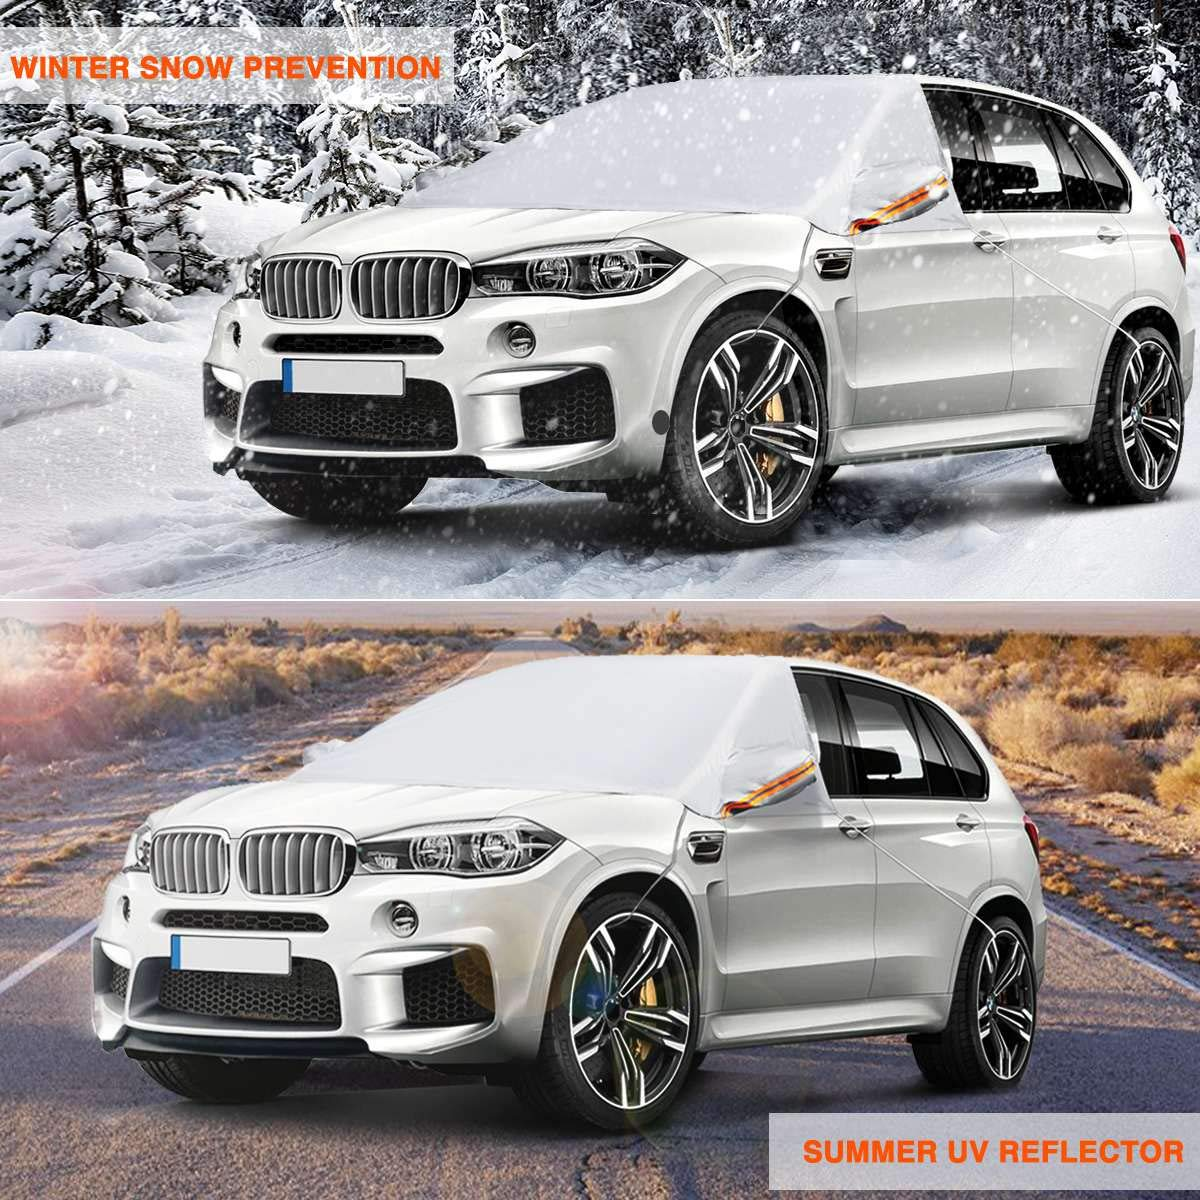 Windshield Cover for ice and Snow with 3 Layer Protection,Snow Car Window Snow Cover Fits All Cars Ice SUV and UV All-Weather Protection Meddom Car Windshield Cover Frost,Scratch